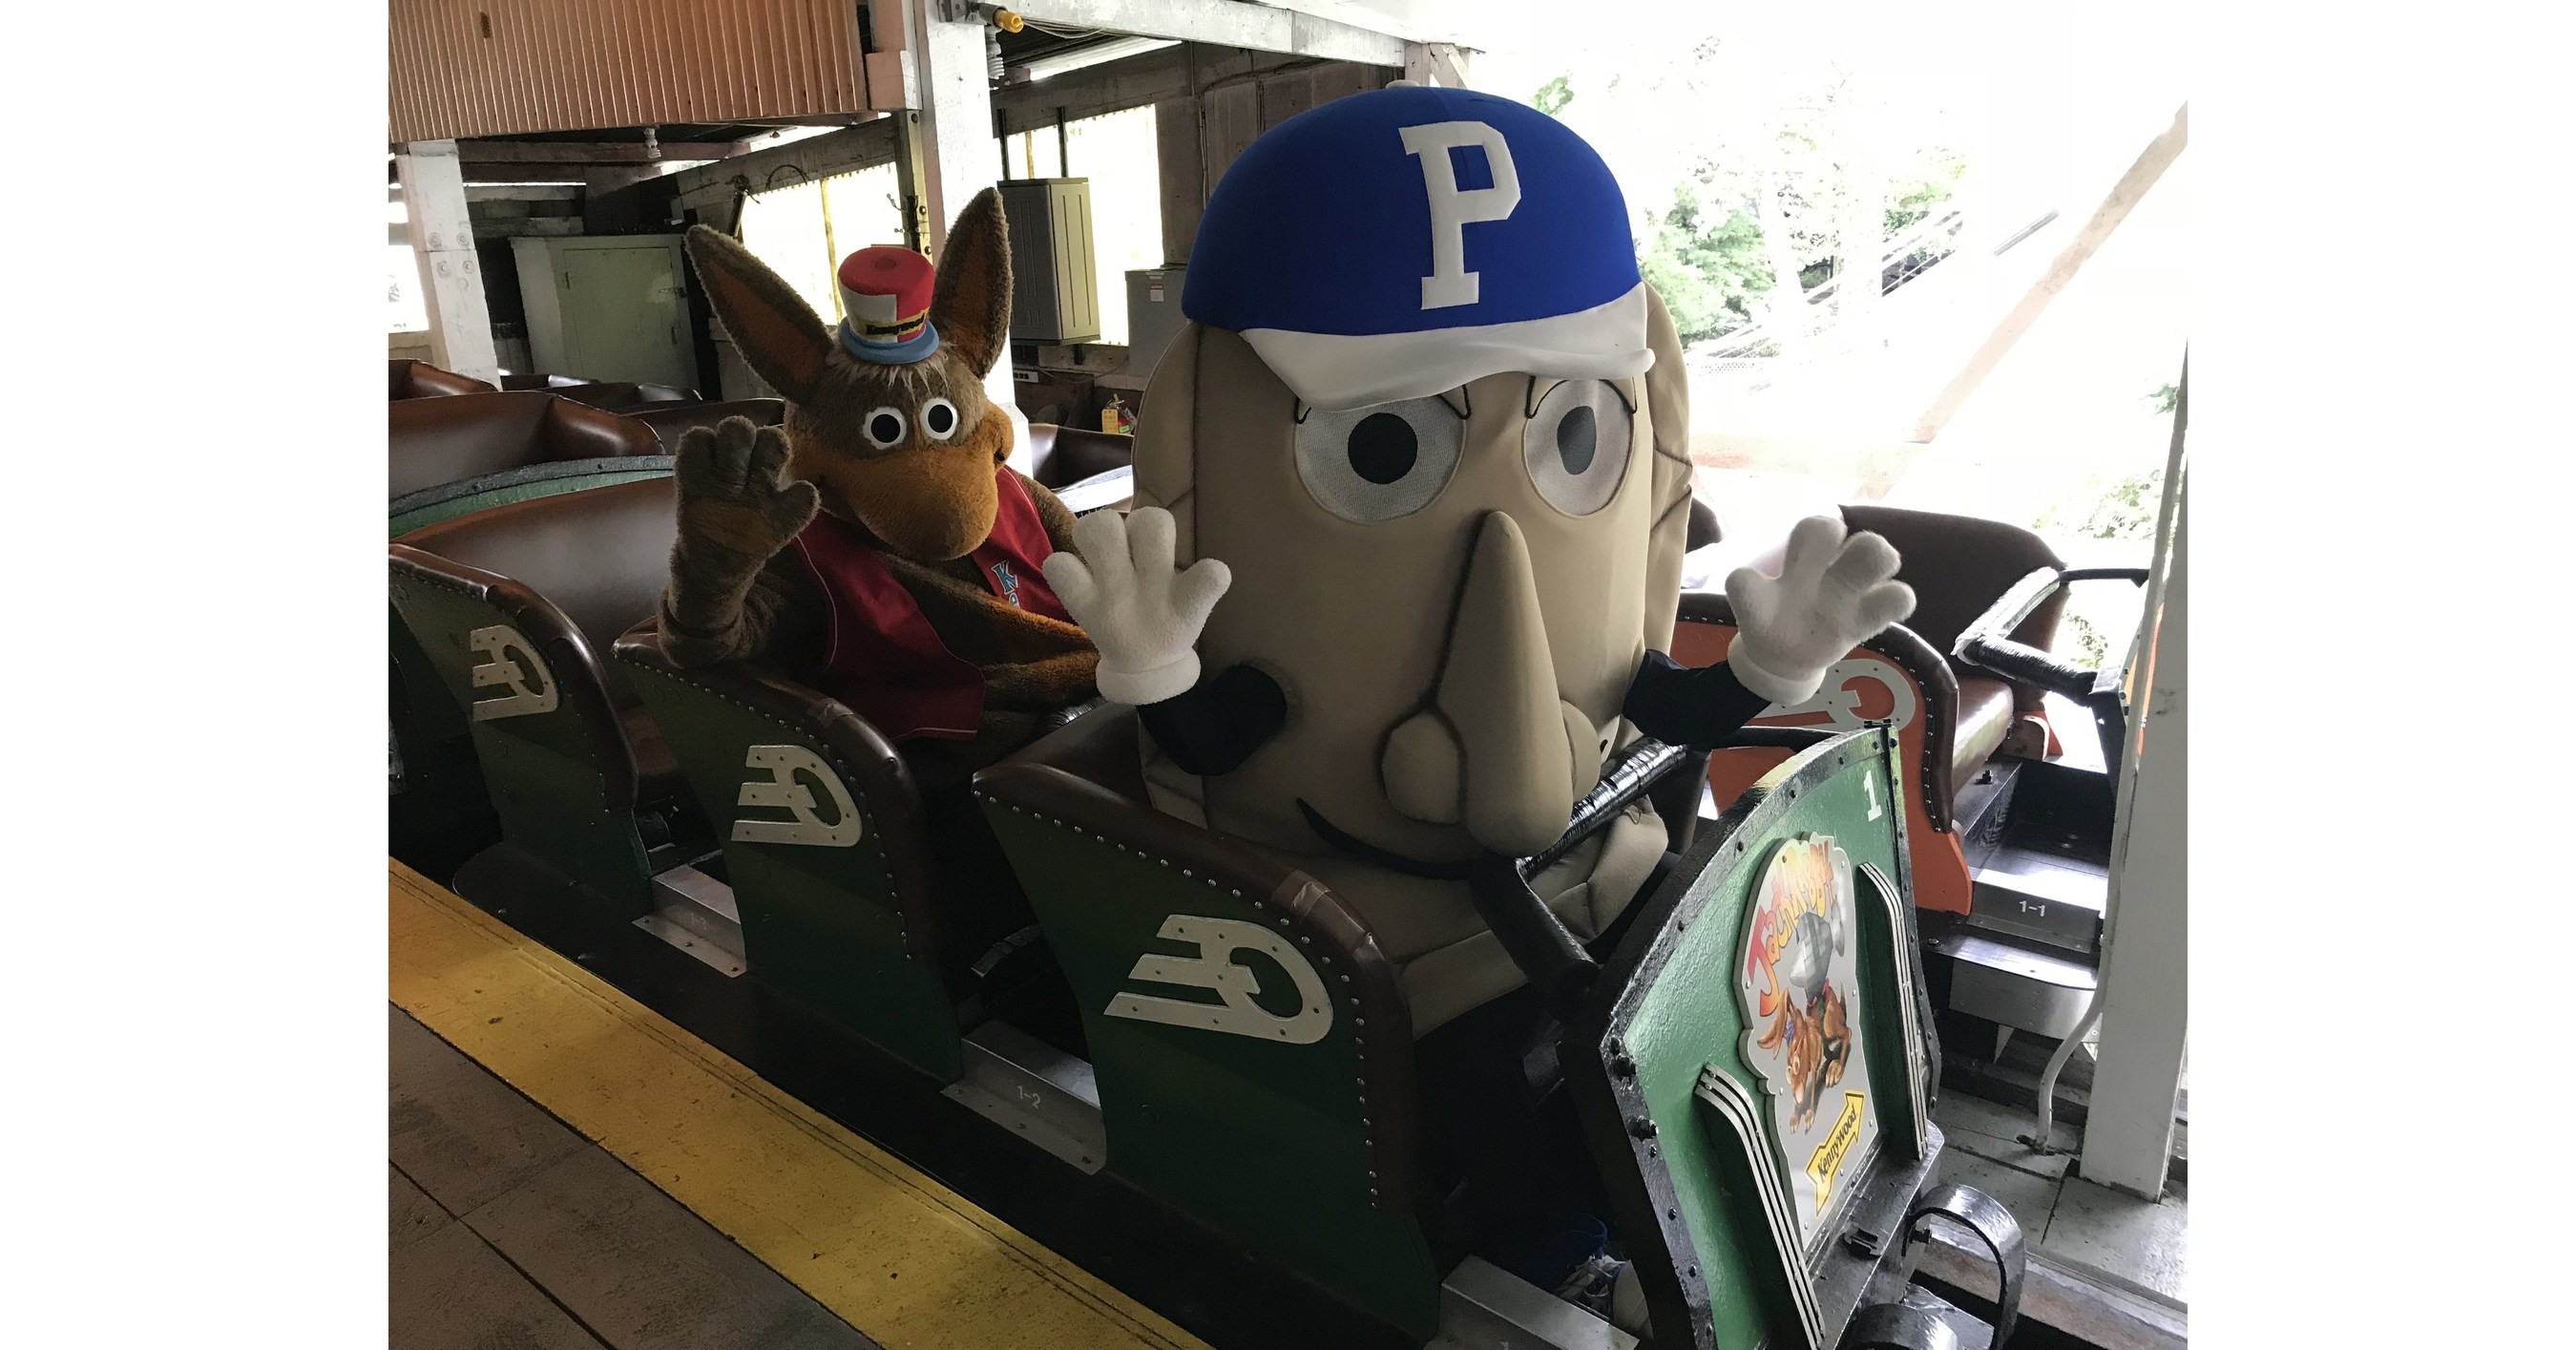 The Pittsburgh Pierogi Festival: The Celebration Of Pittsburgh's Favorite Food Returns To Kennywood Park This Sunday, September 22